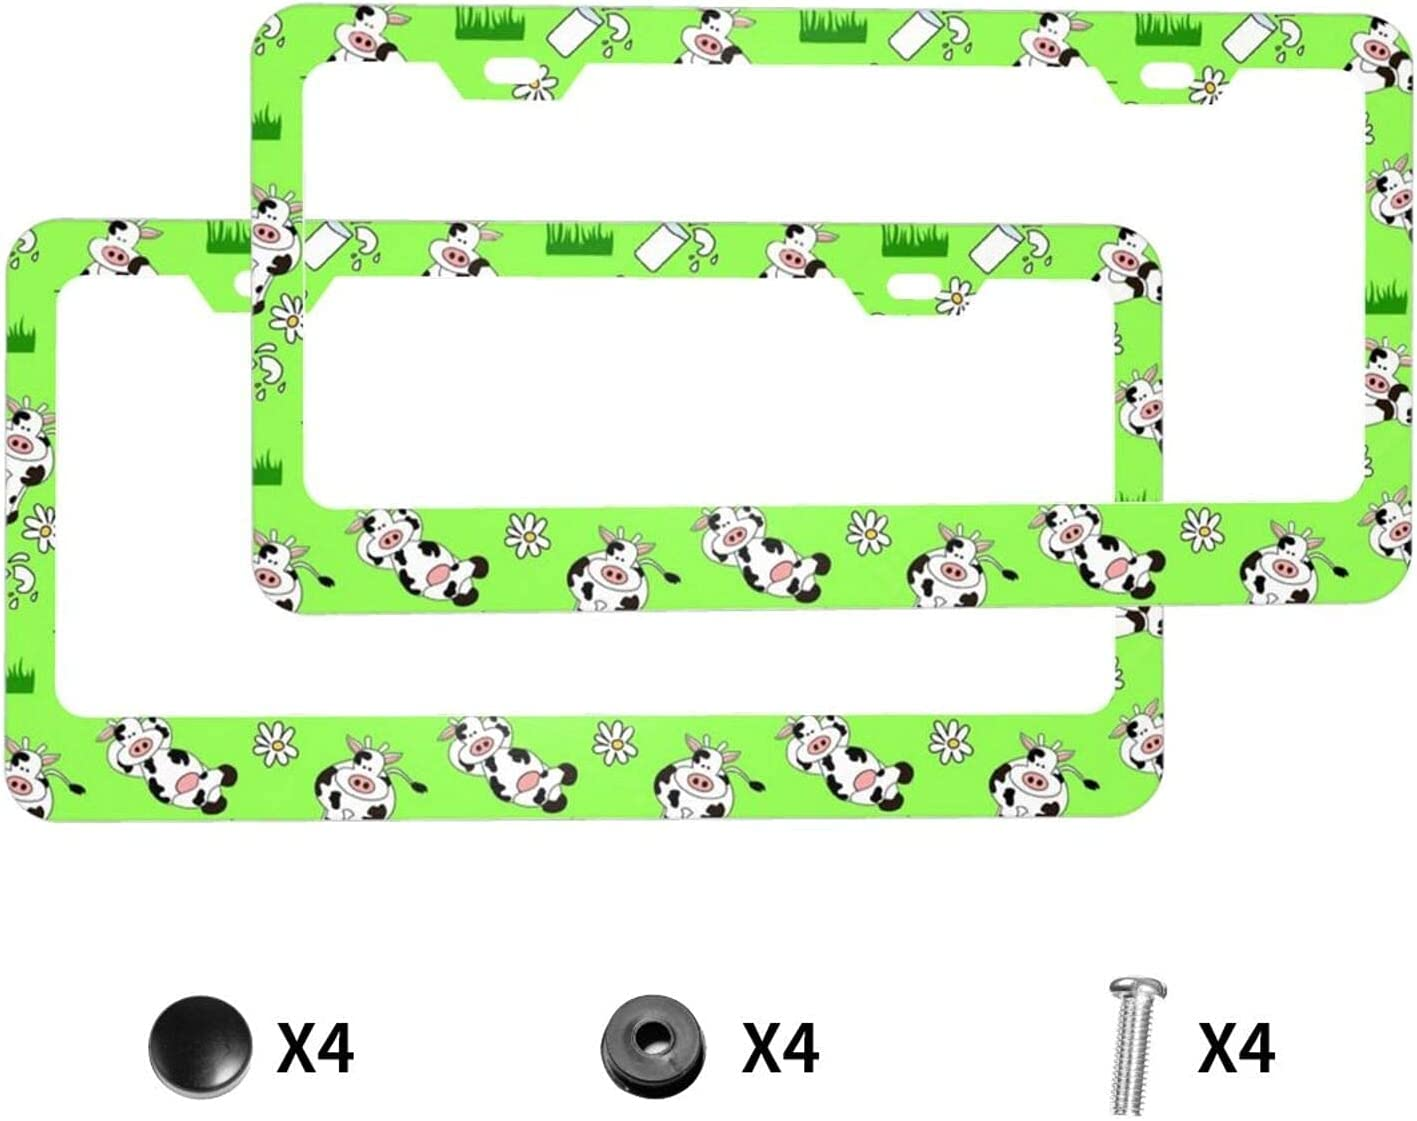 Animer and price revision JDCreativity 2 Luxury Sets Funny Cow Metal Auto Plate License Dec Frame